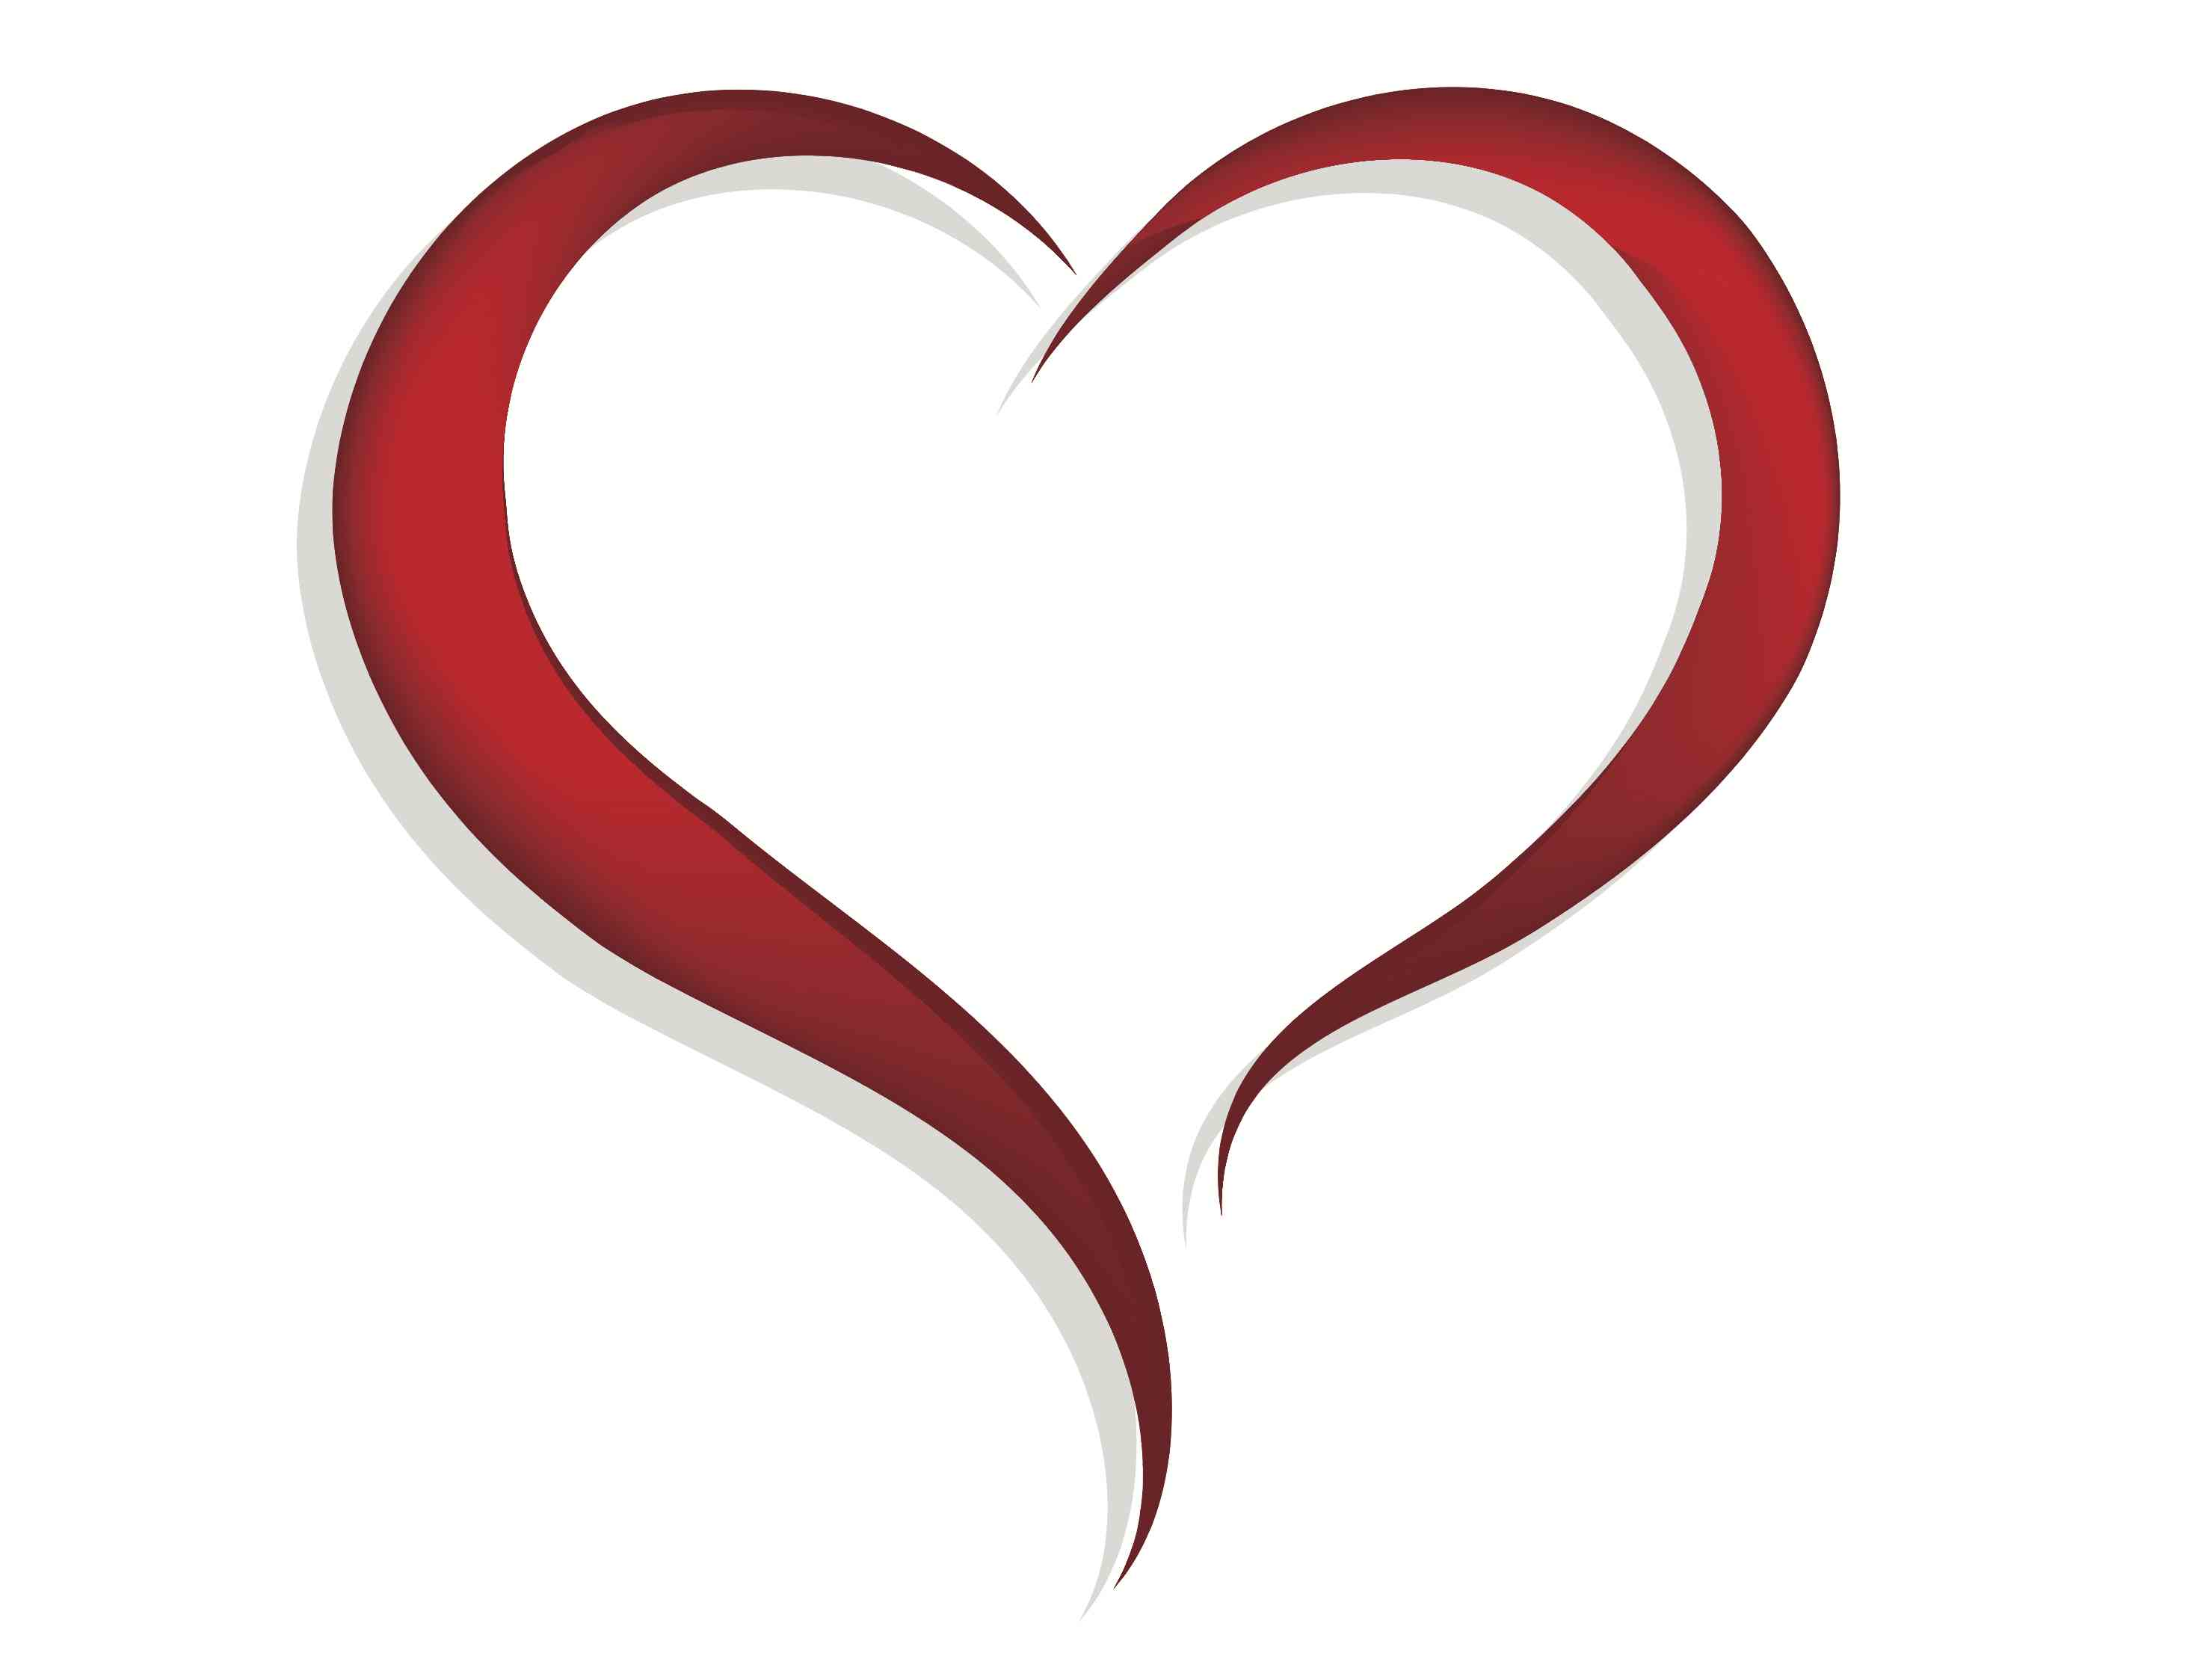 Heart - Heart PNG HD Transparent Background